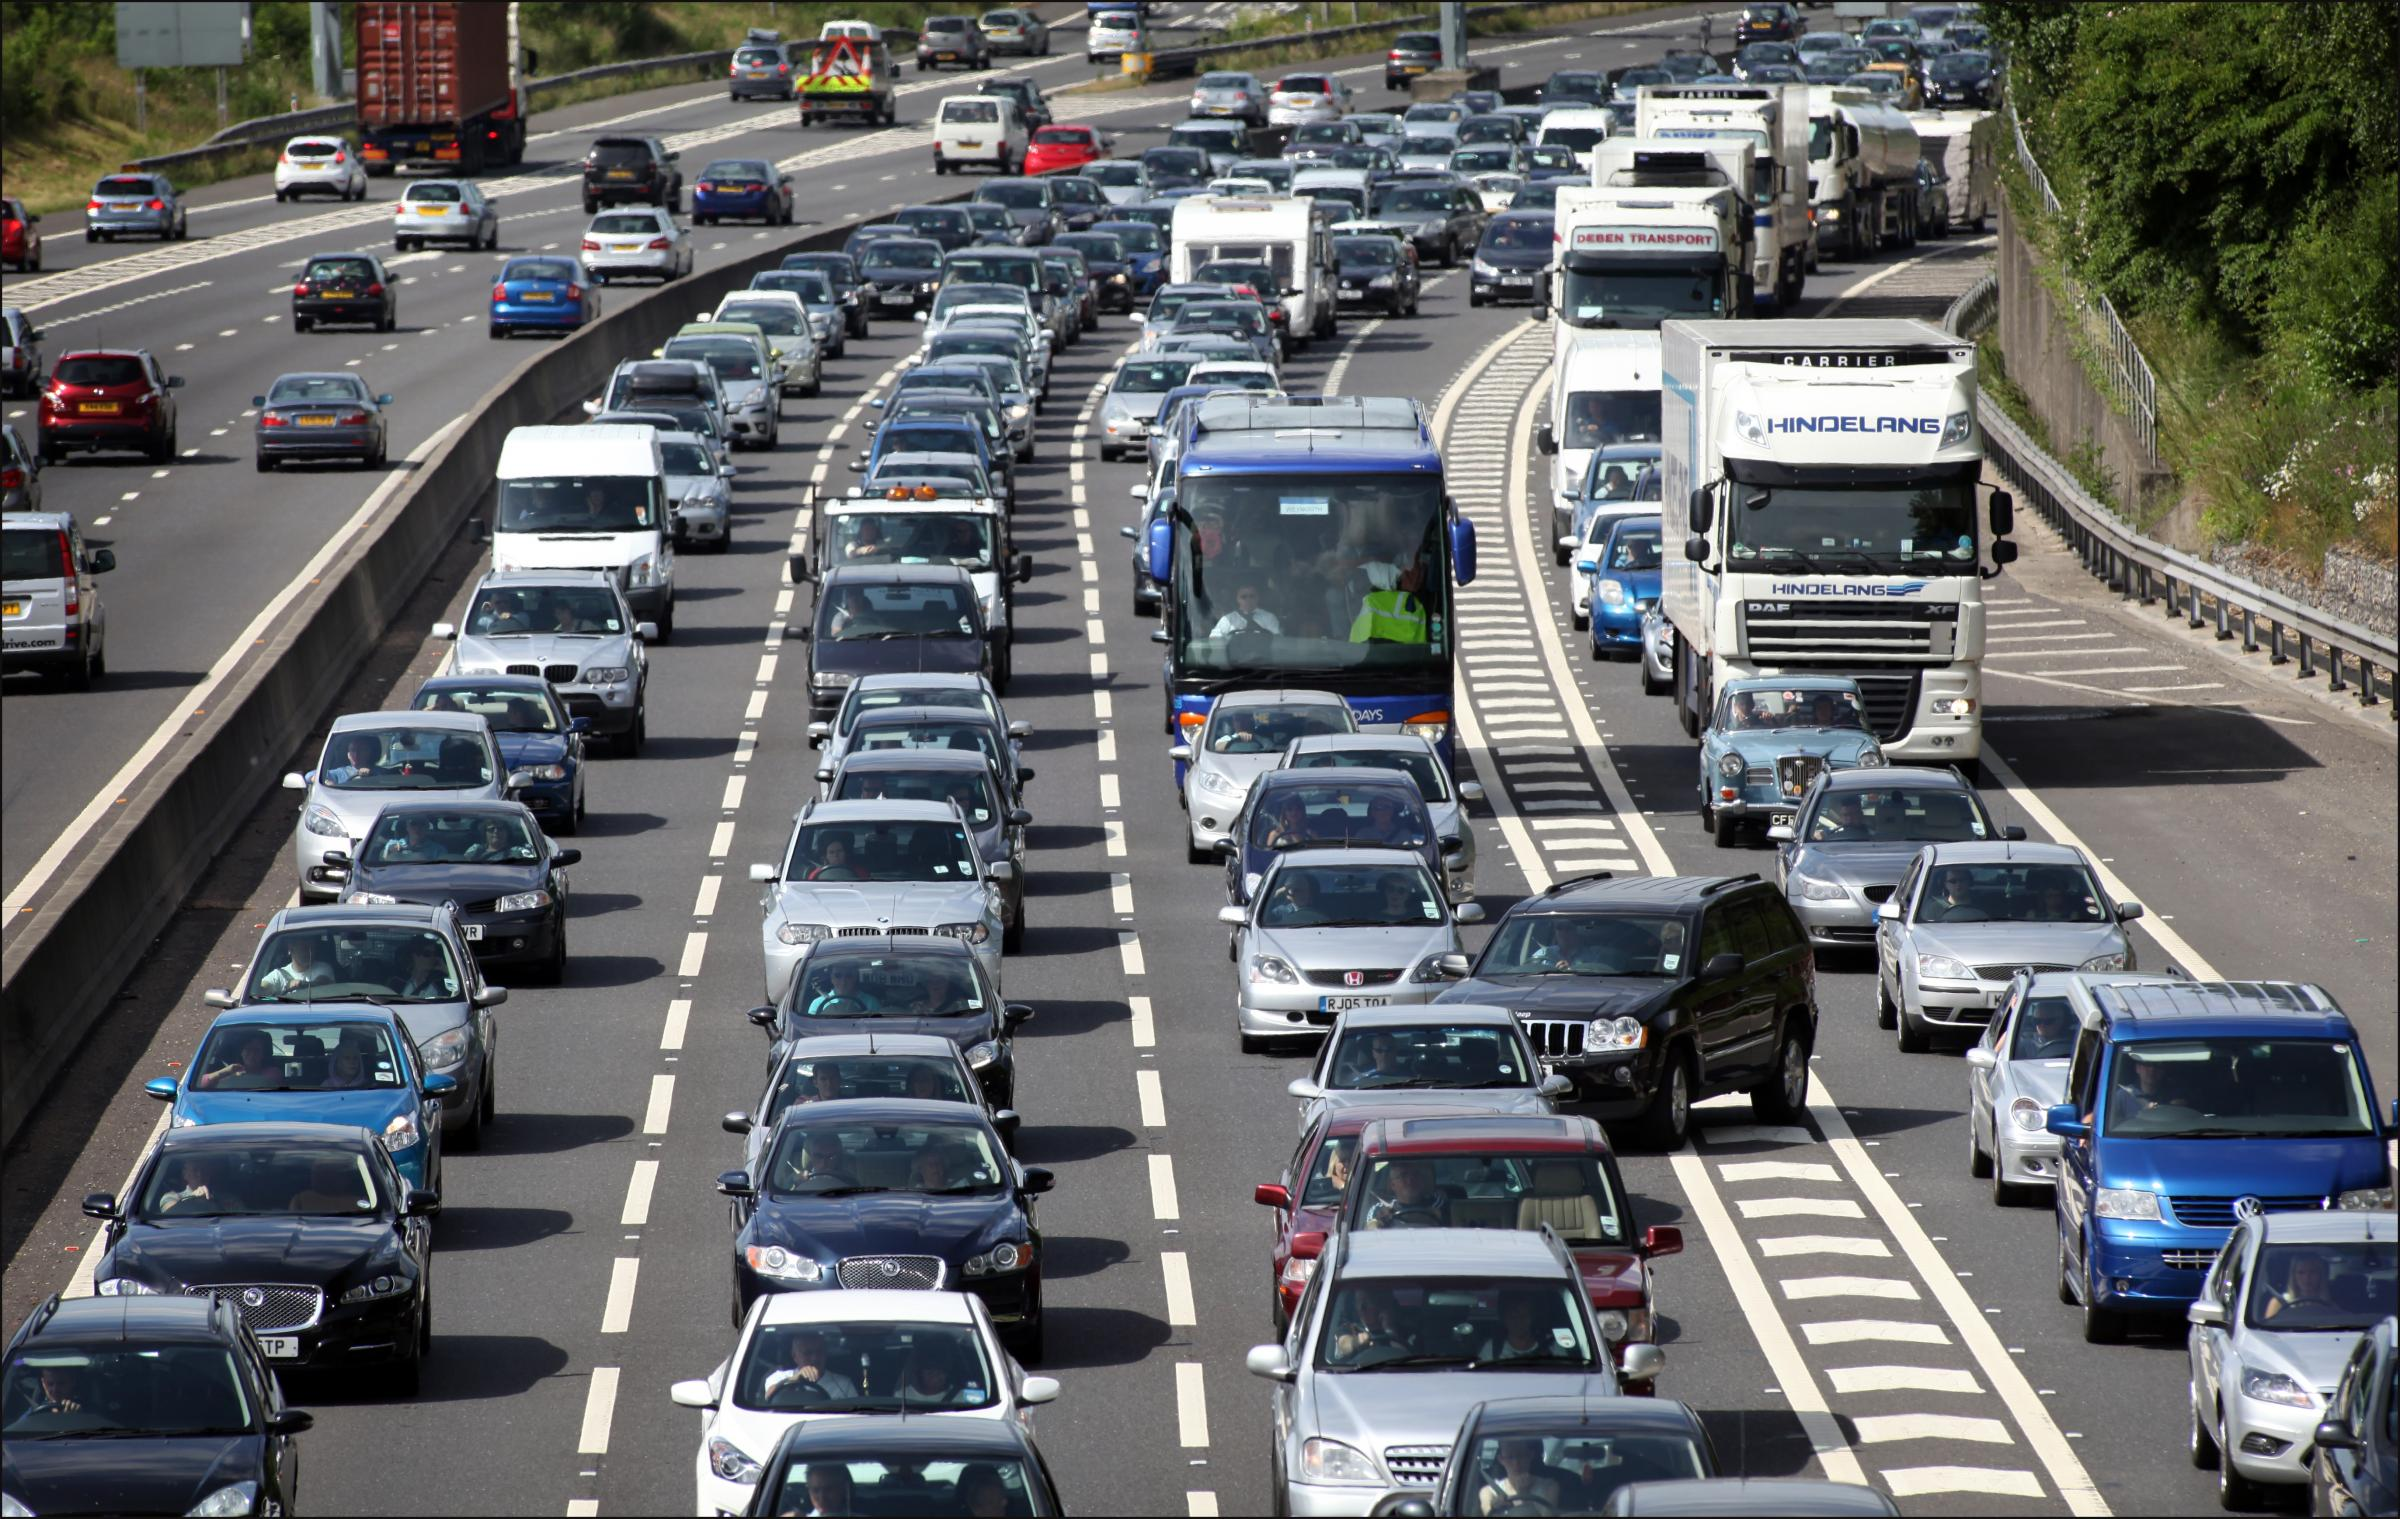 Motorists facing delays in show traffic